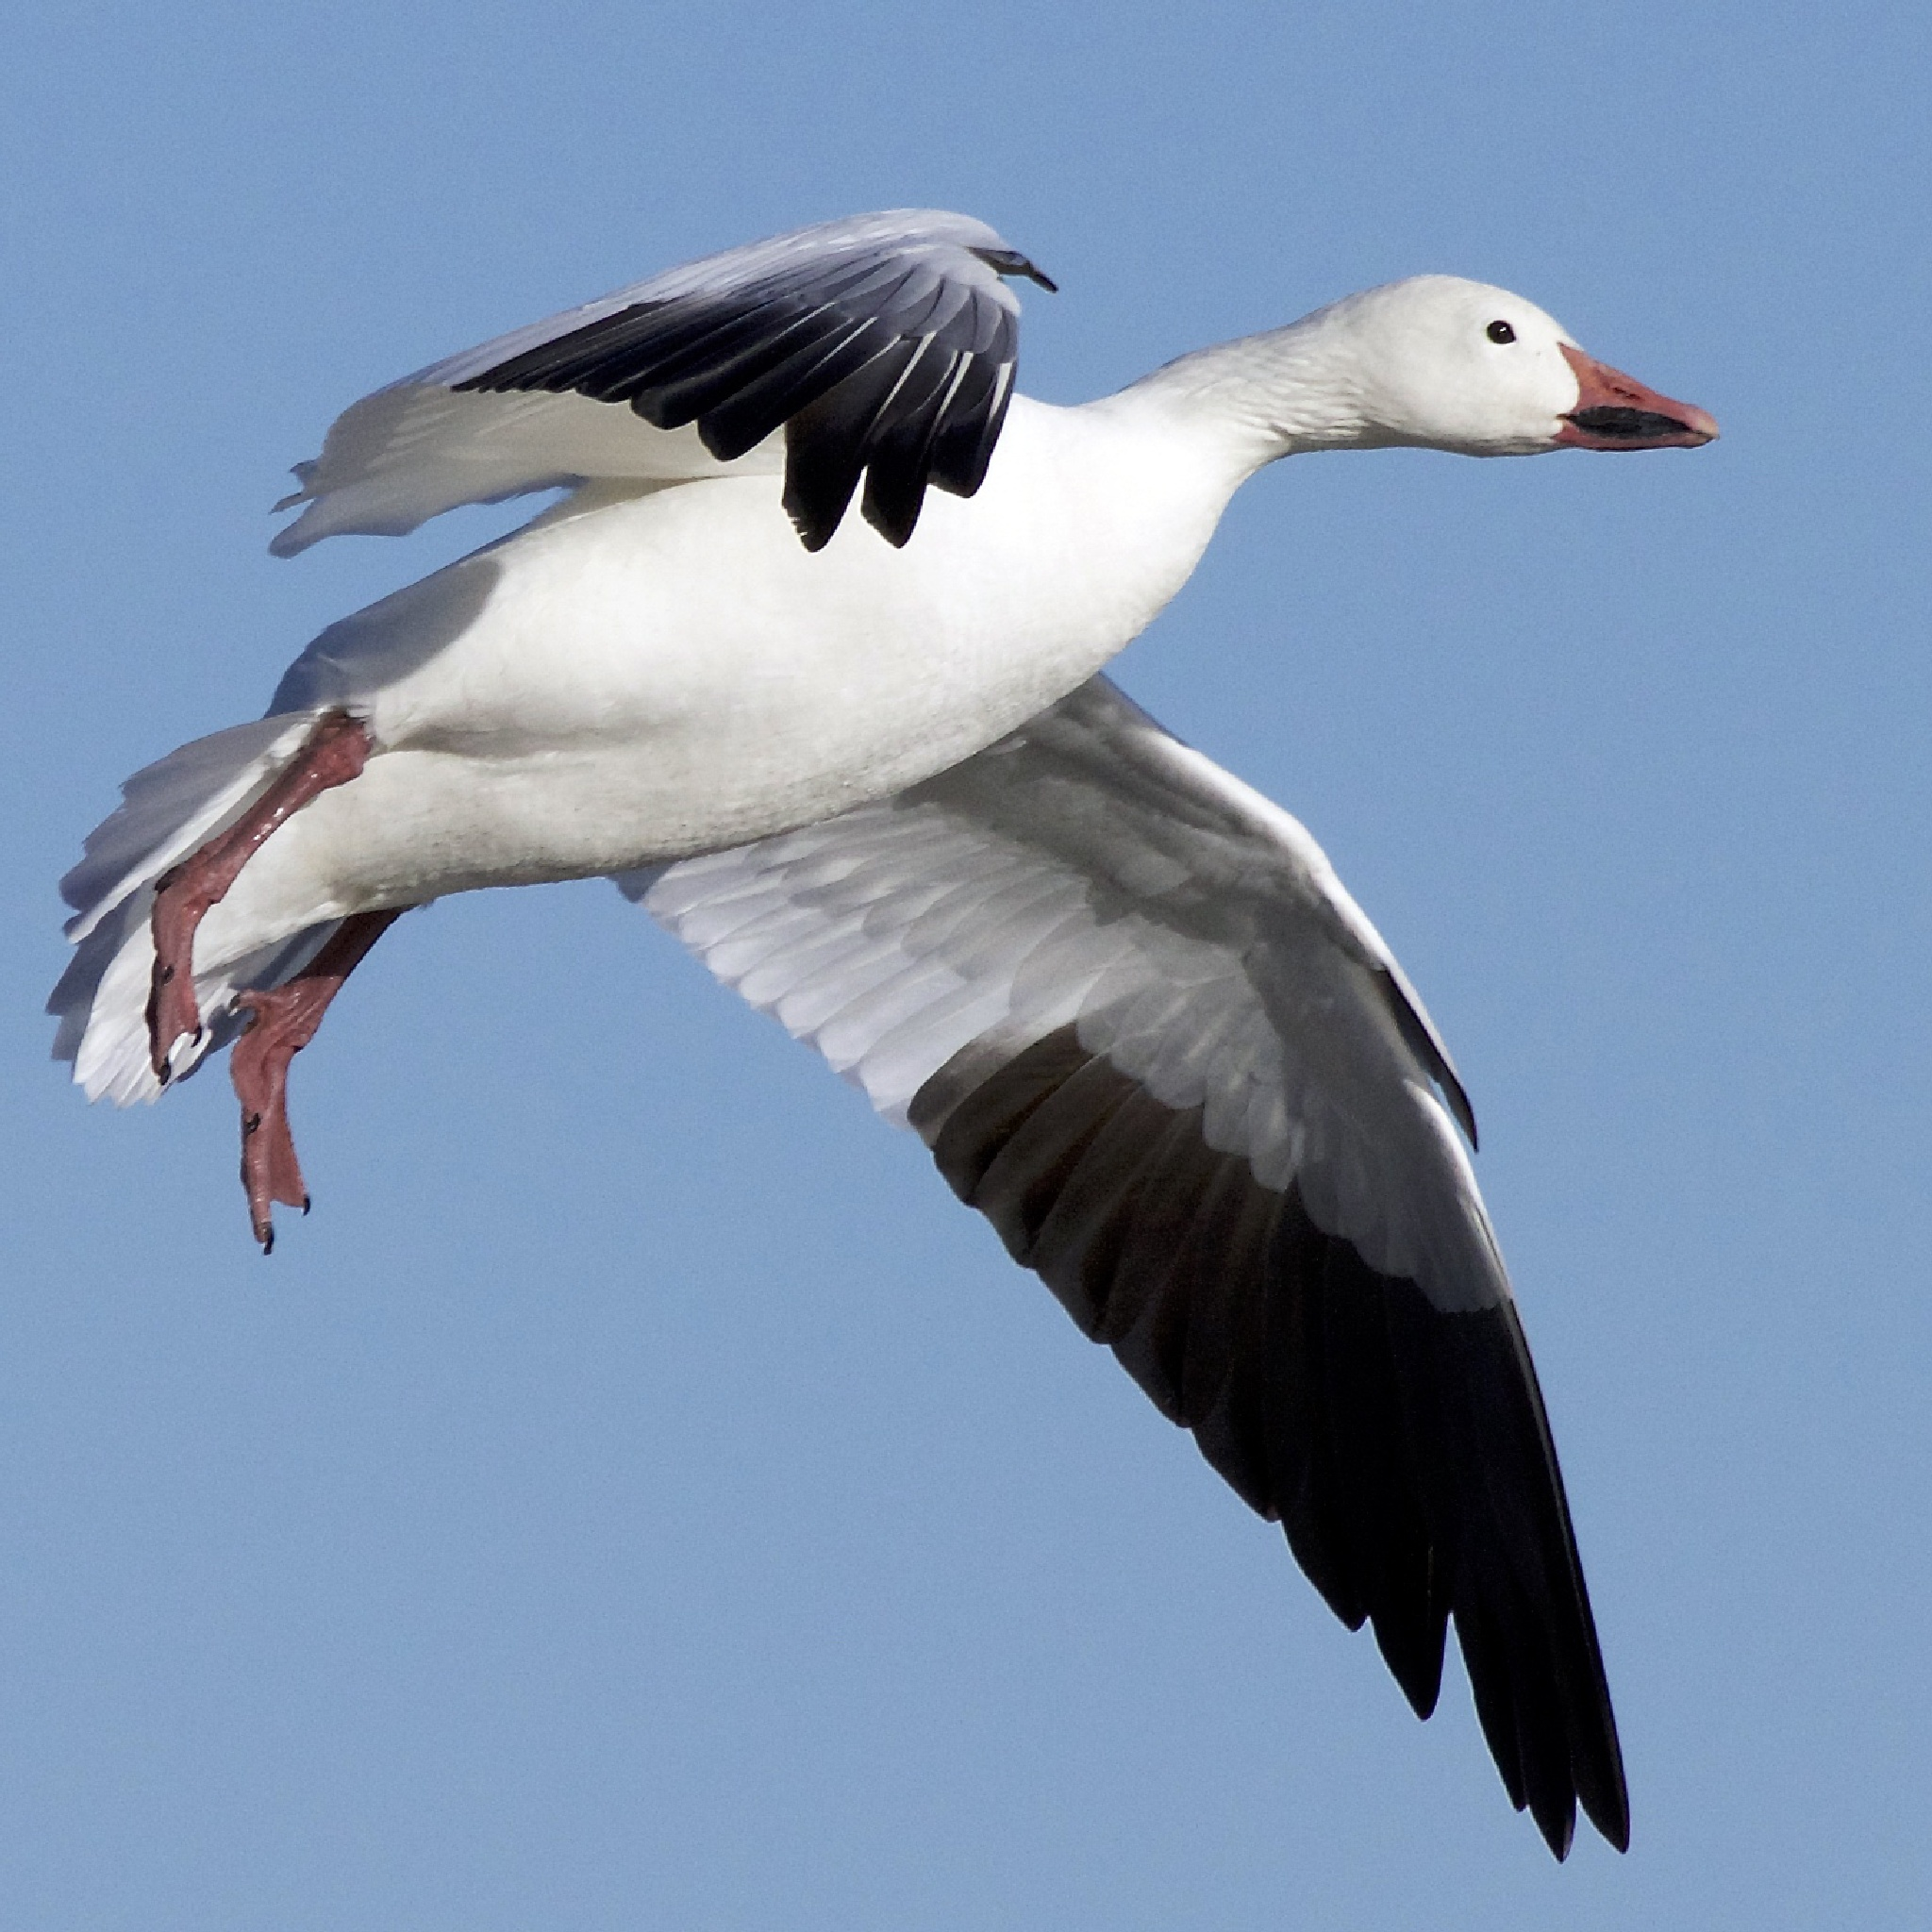 Snow Goose Preparing to Land by Steve Aicinena